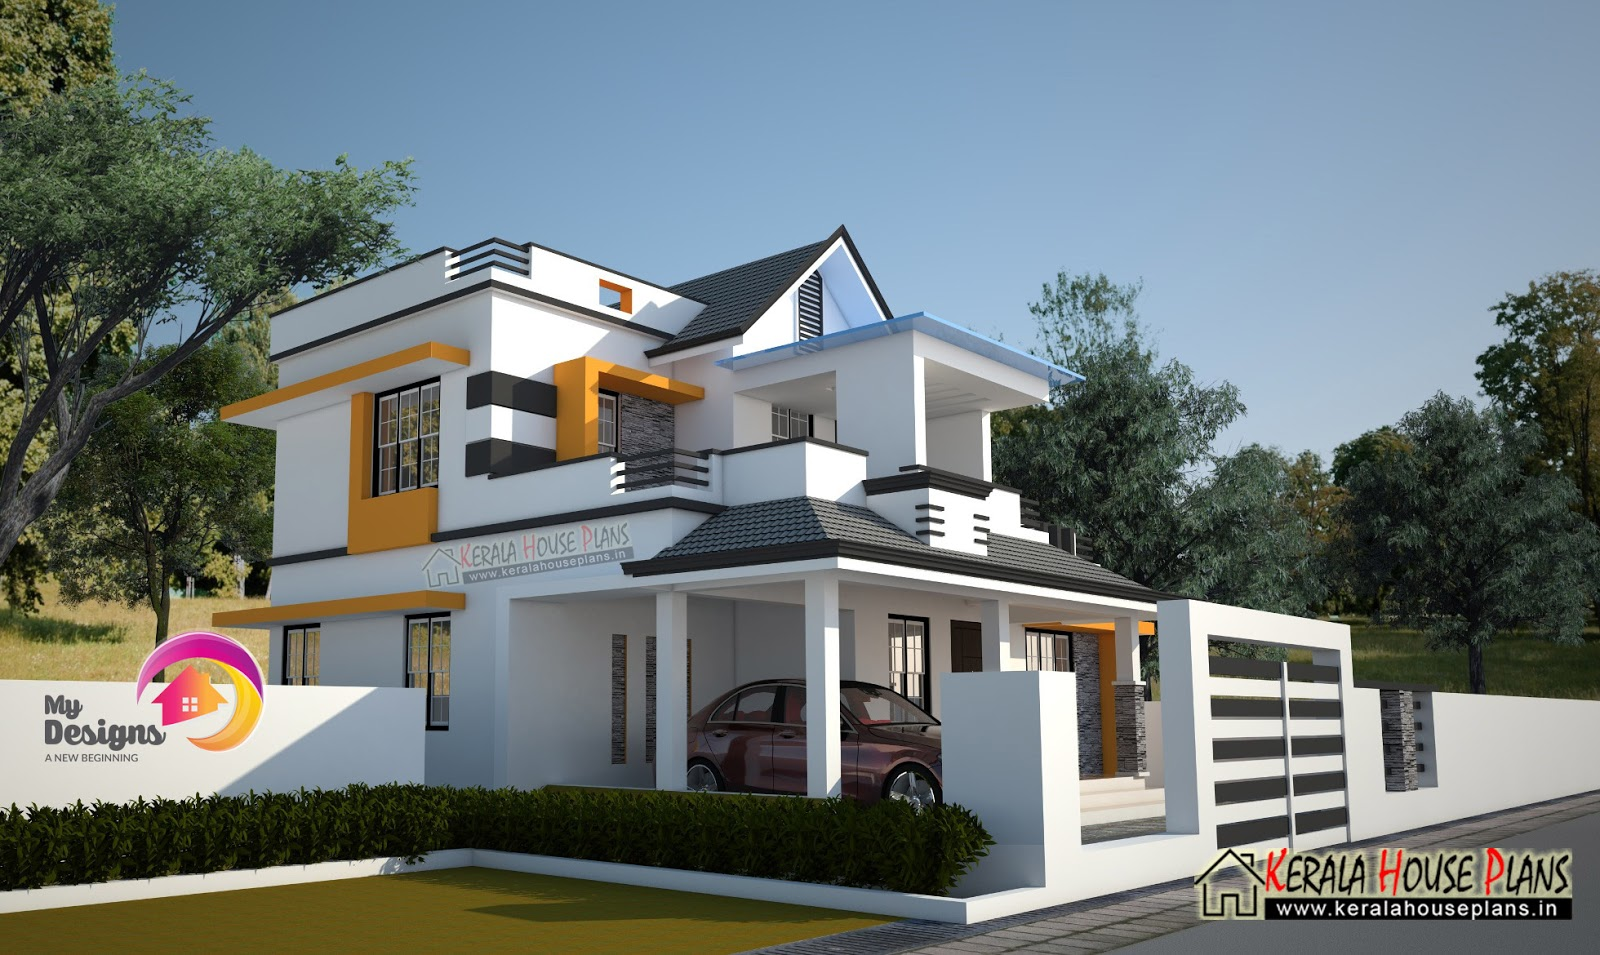 3 bedroom 2 story house design kerala house plans for Two story bedroom